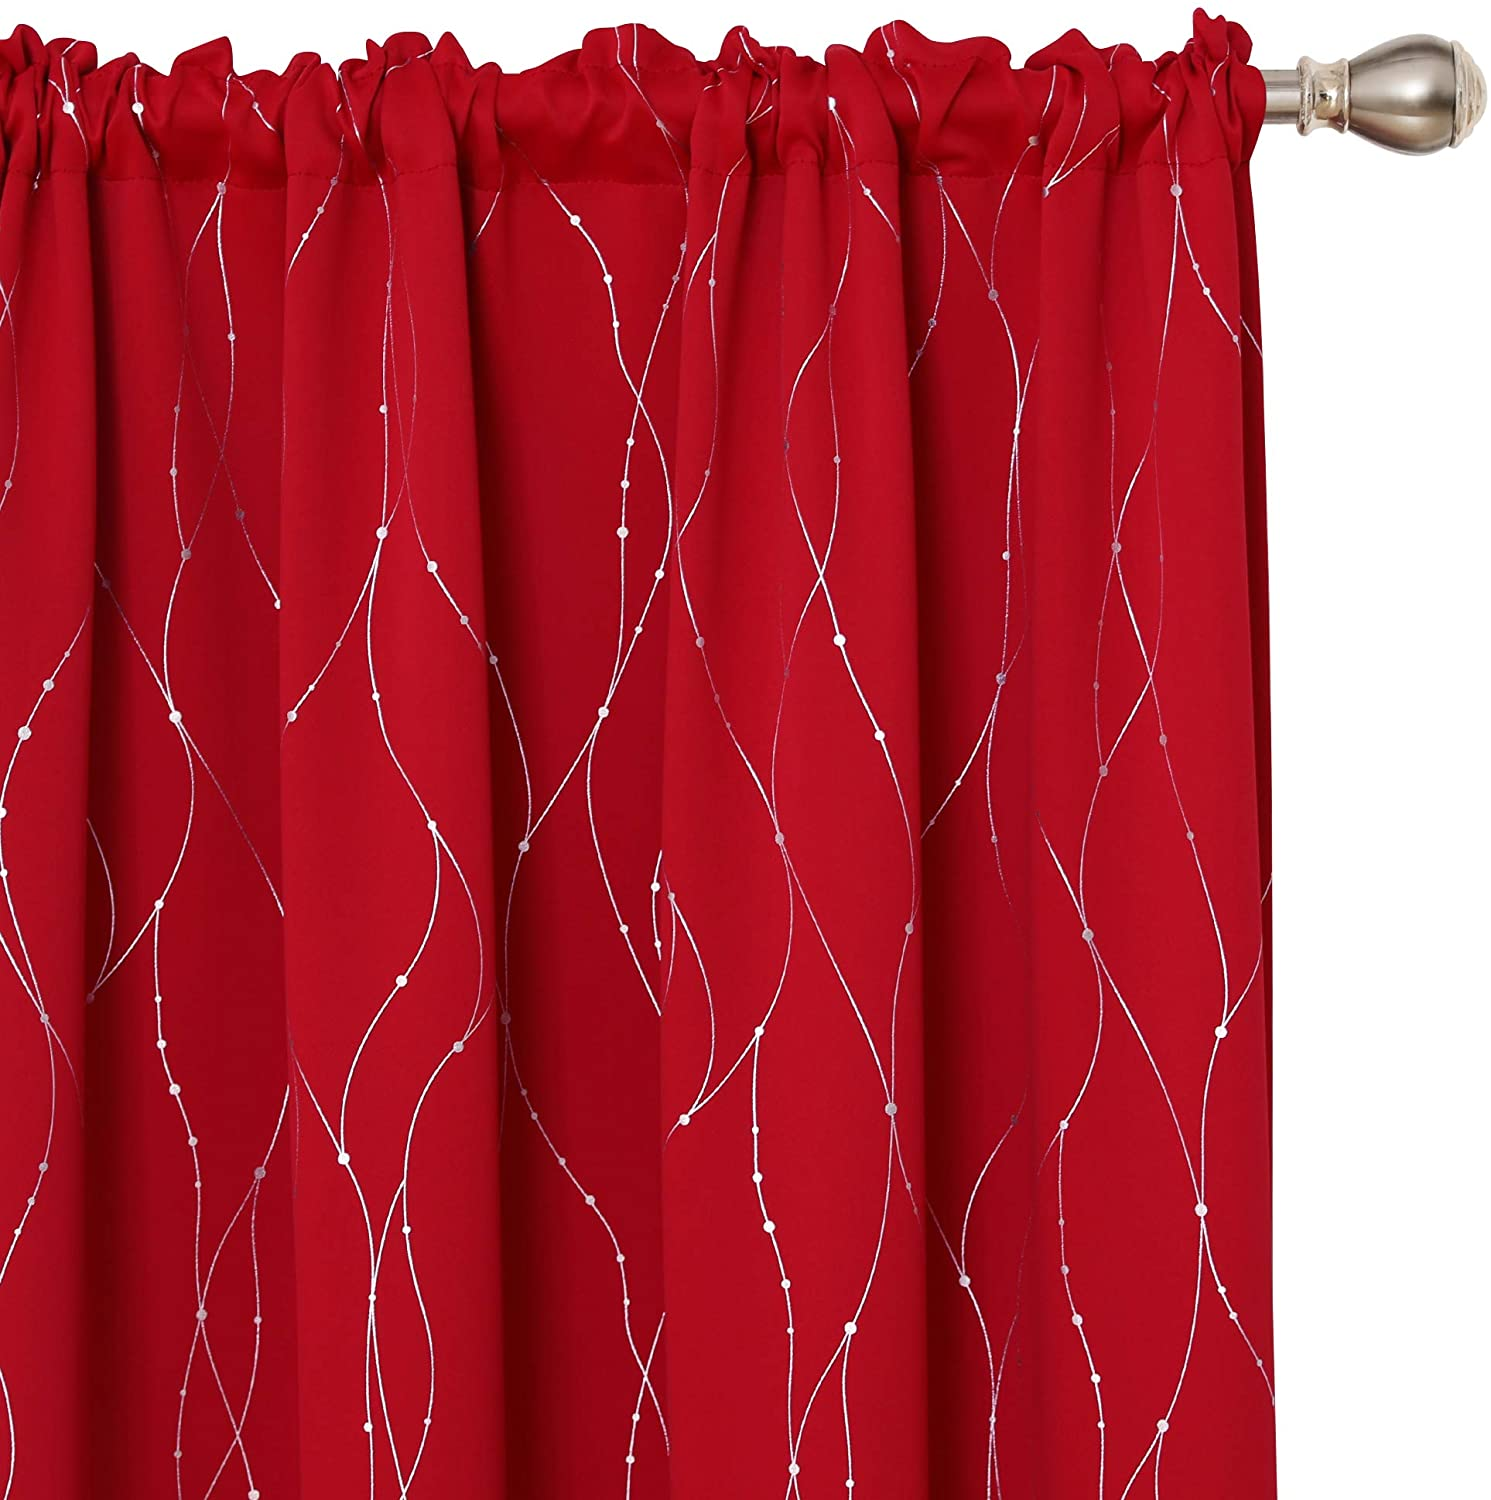 Deconovo Red Blackout Curtains and Drapes Wave Line with Dots Printed Rod Pocket Window Treatment Sets Curtains for Bedroom 52 x 84 Inch Red 2 Panels